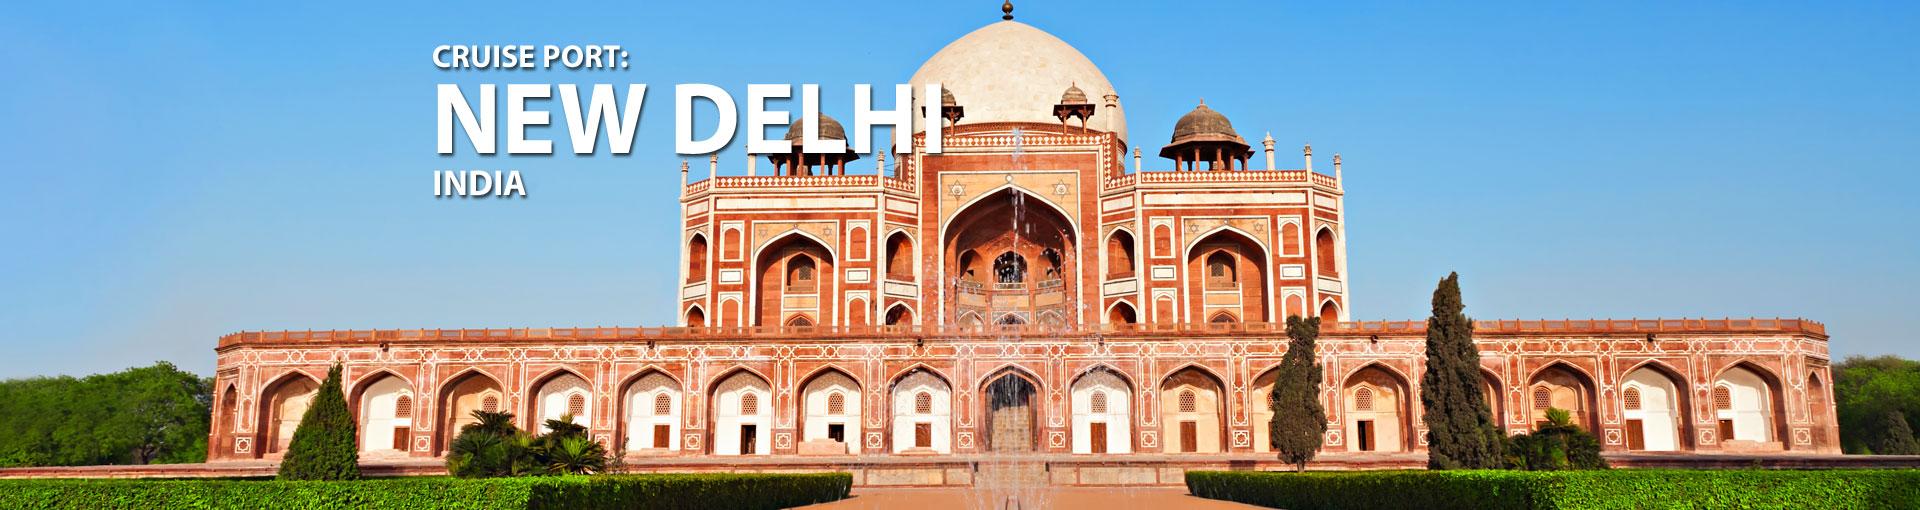 Cruises to New Delhi, India